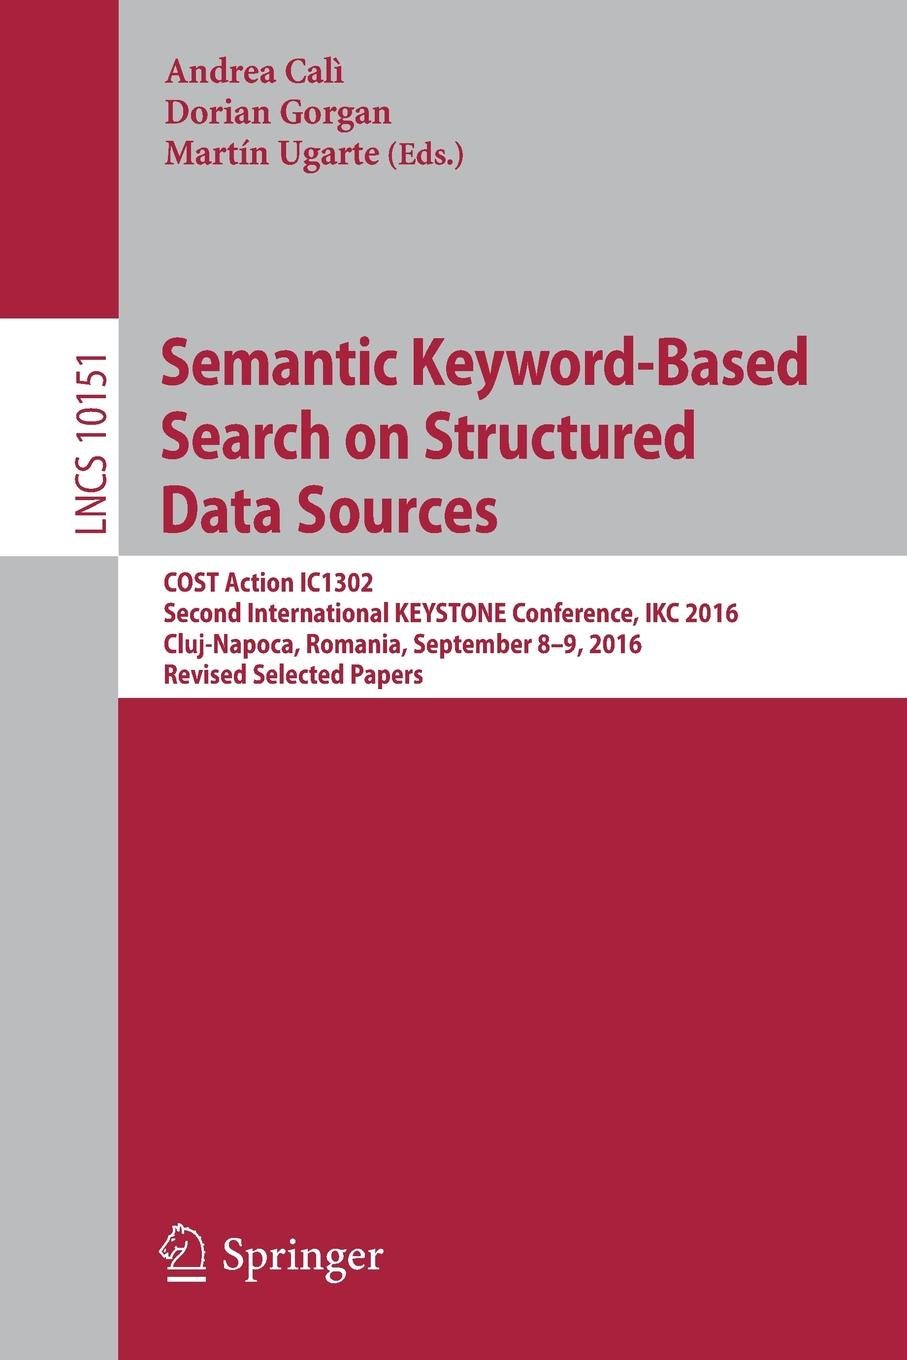 лучшая цена Semantic Keyword-Based Search on Structured Data Sources. COST Action IC1302 Second International KEYSTONE Conference, IKC 2016, Cluj-Napoca, Romania, September 8-9, 2016, Revised Selected Papers